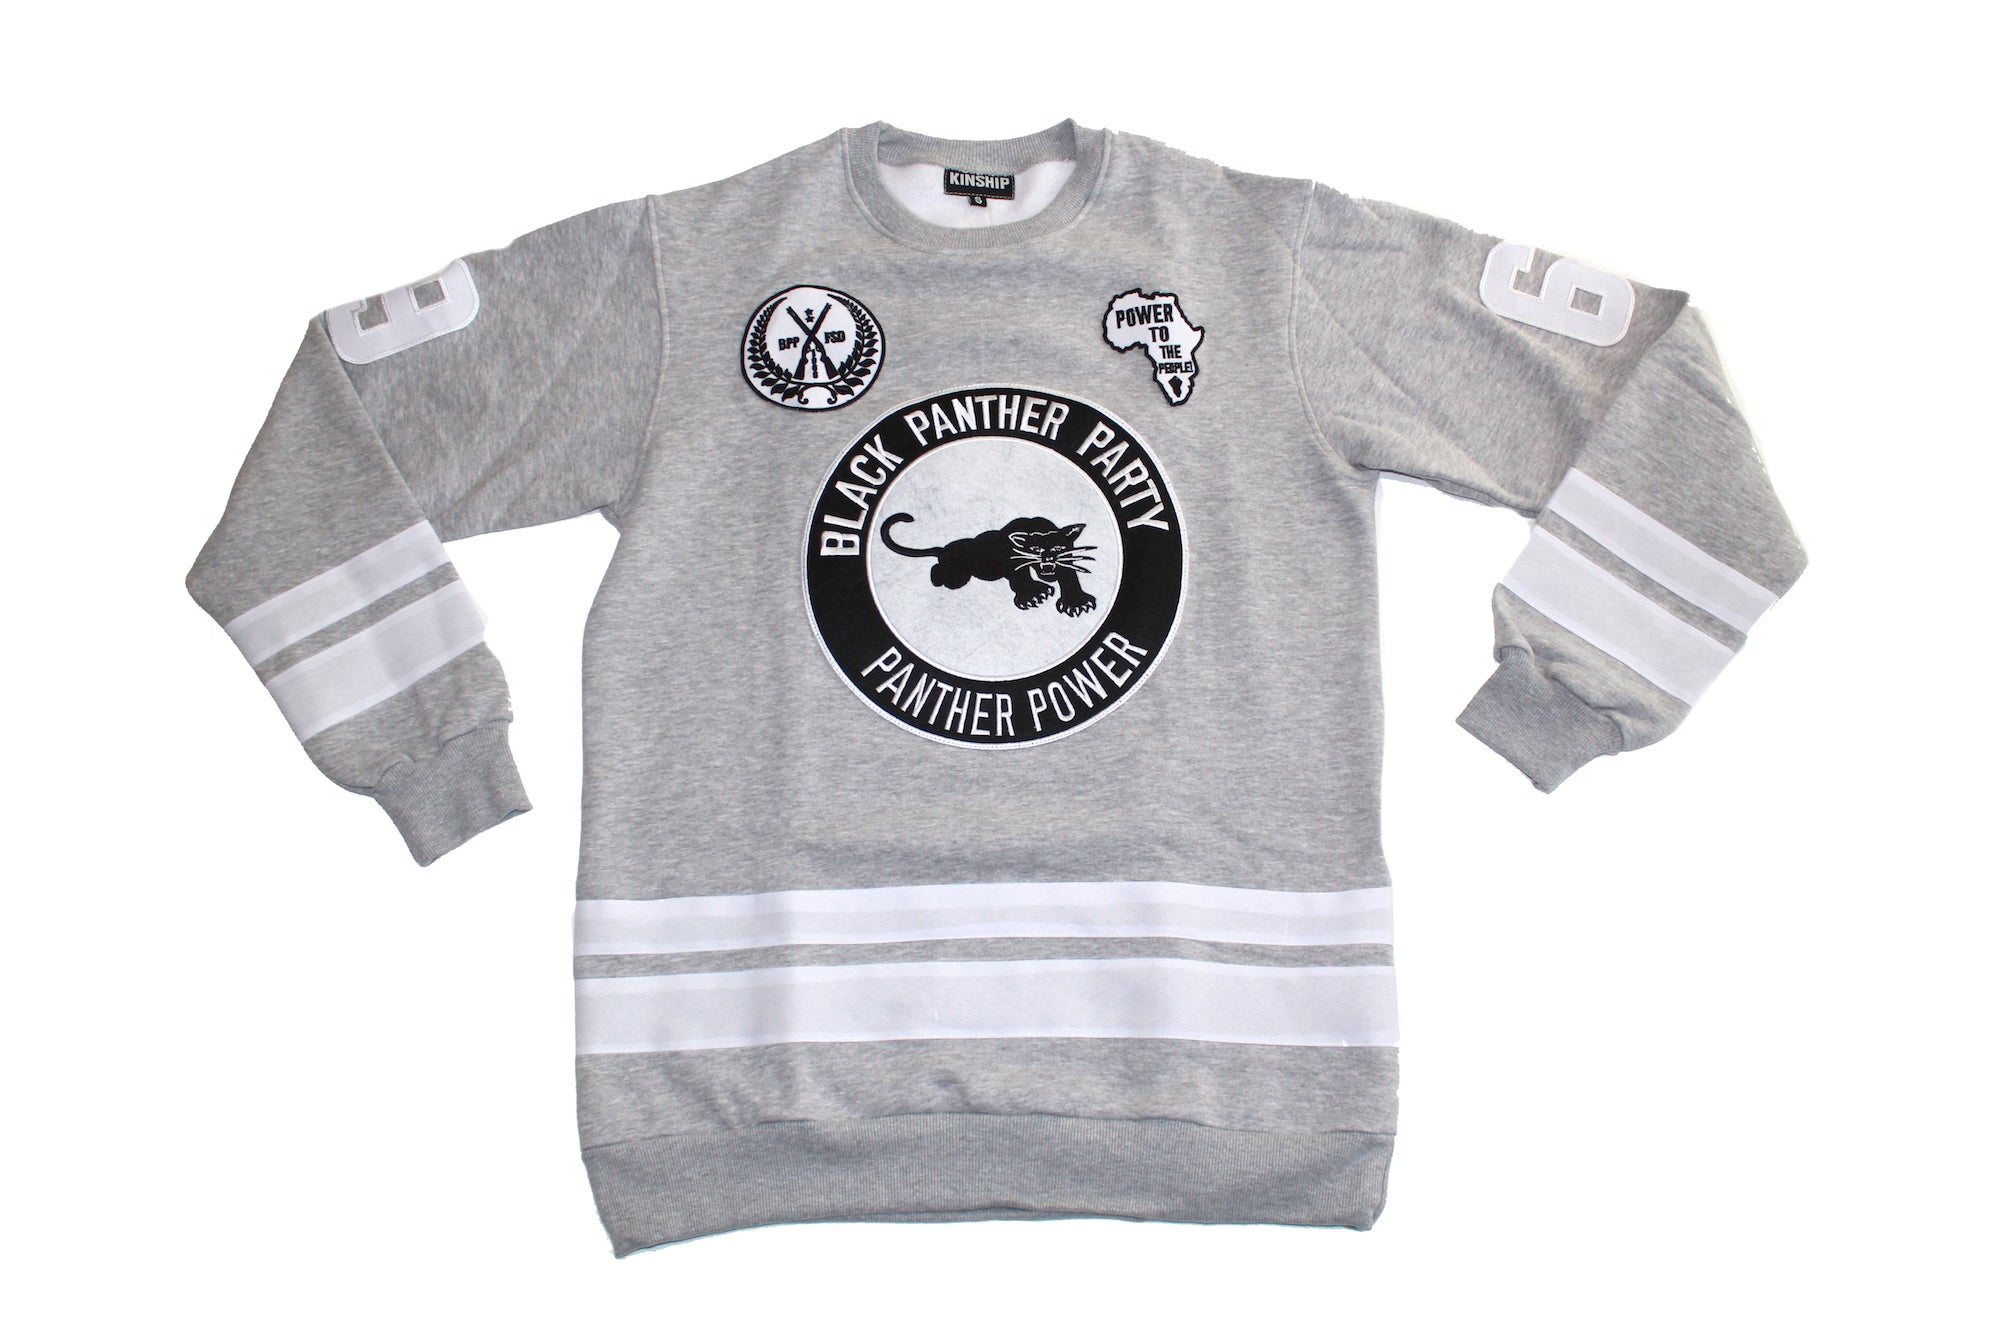 Black Panther Hockey Sweatshirt in Grey Contrast